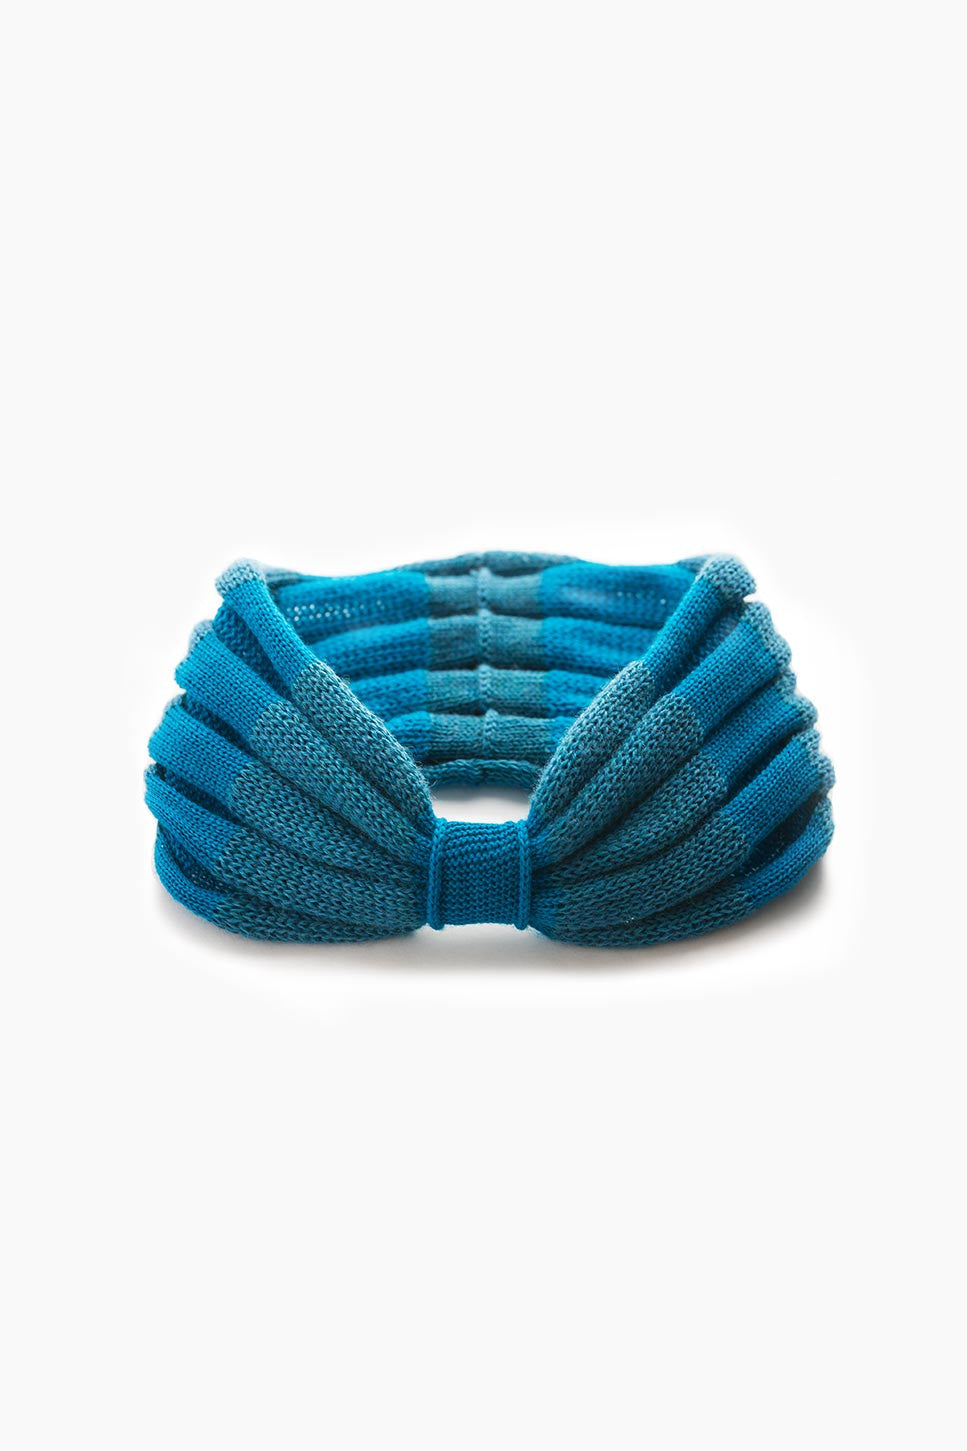 Iris headband - Electric Blue & Teal